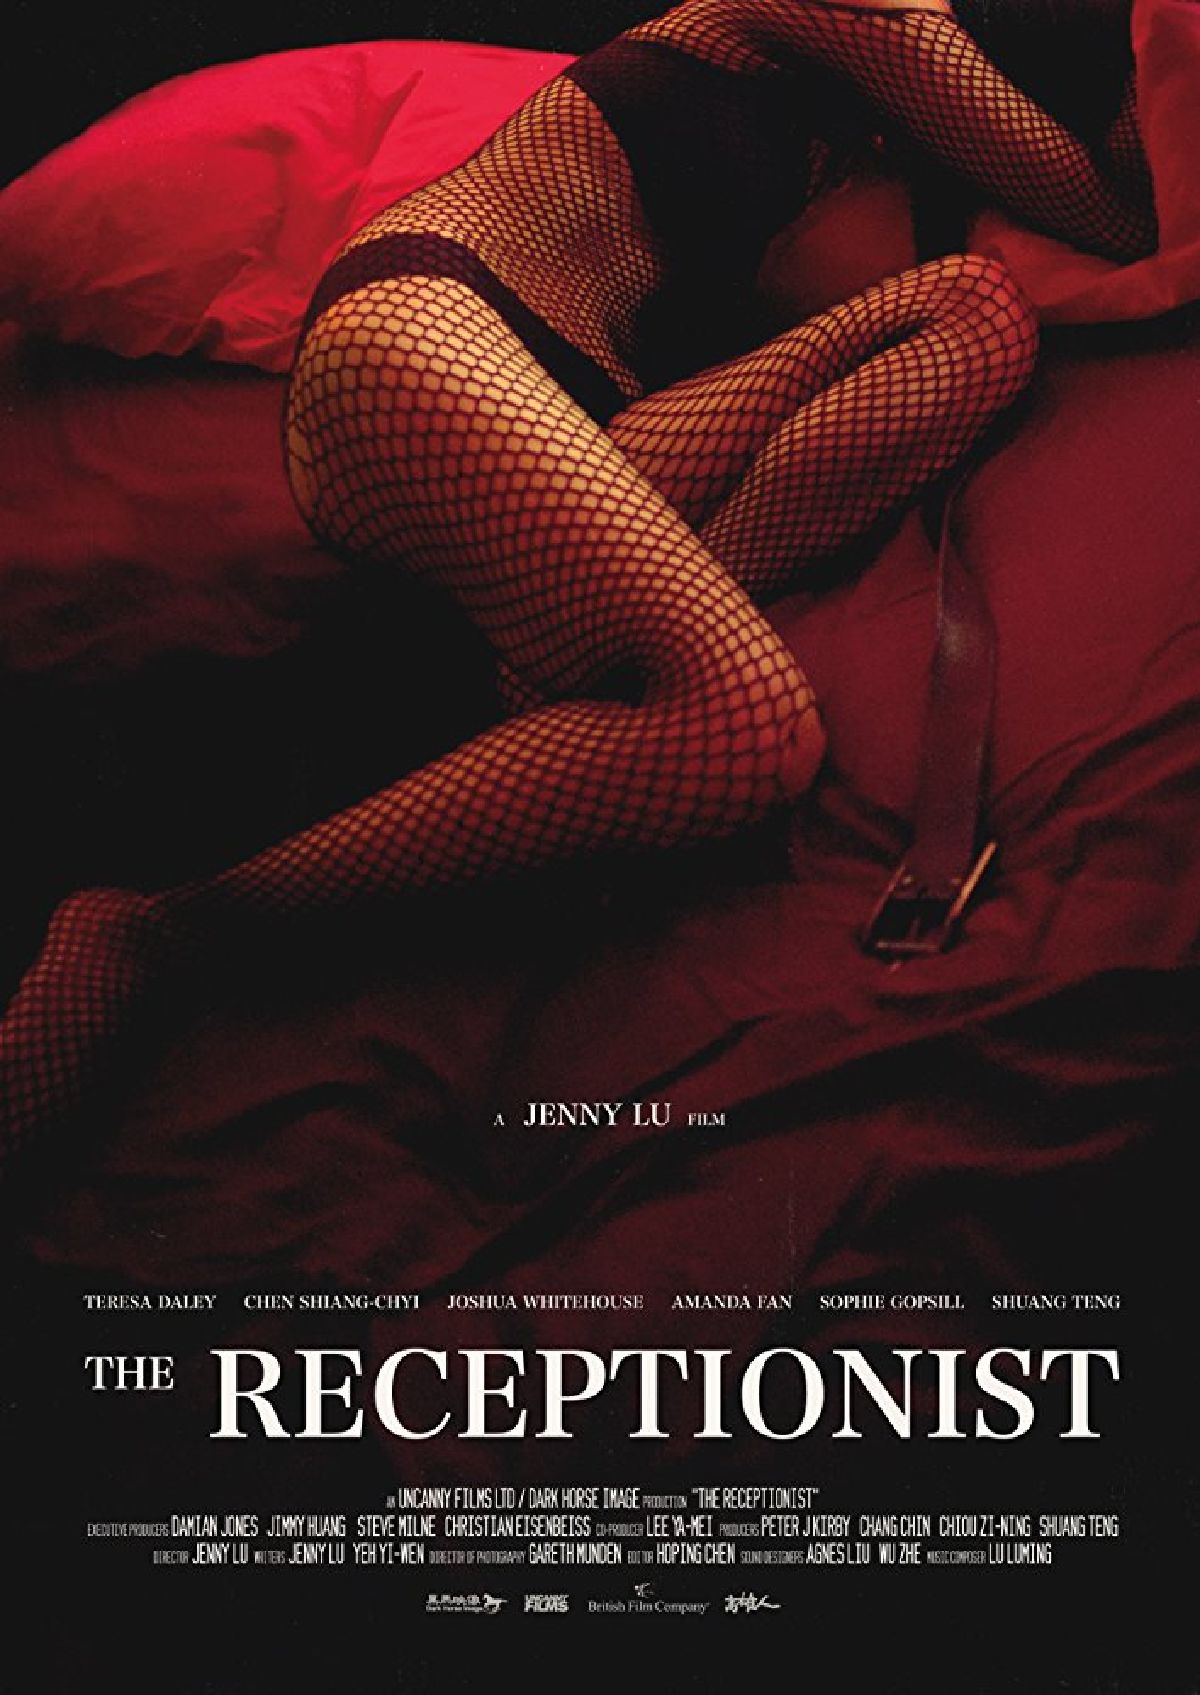 'The Receptionist' movie poster